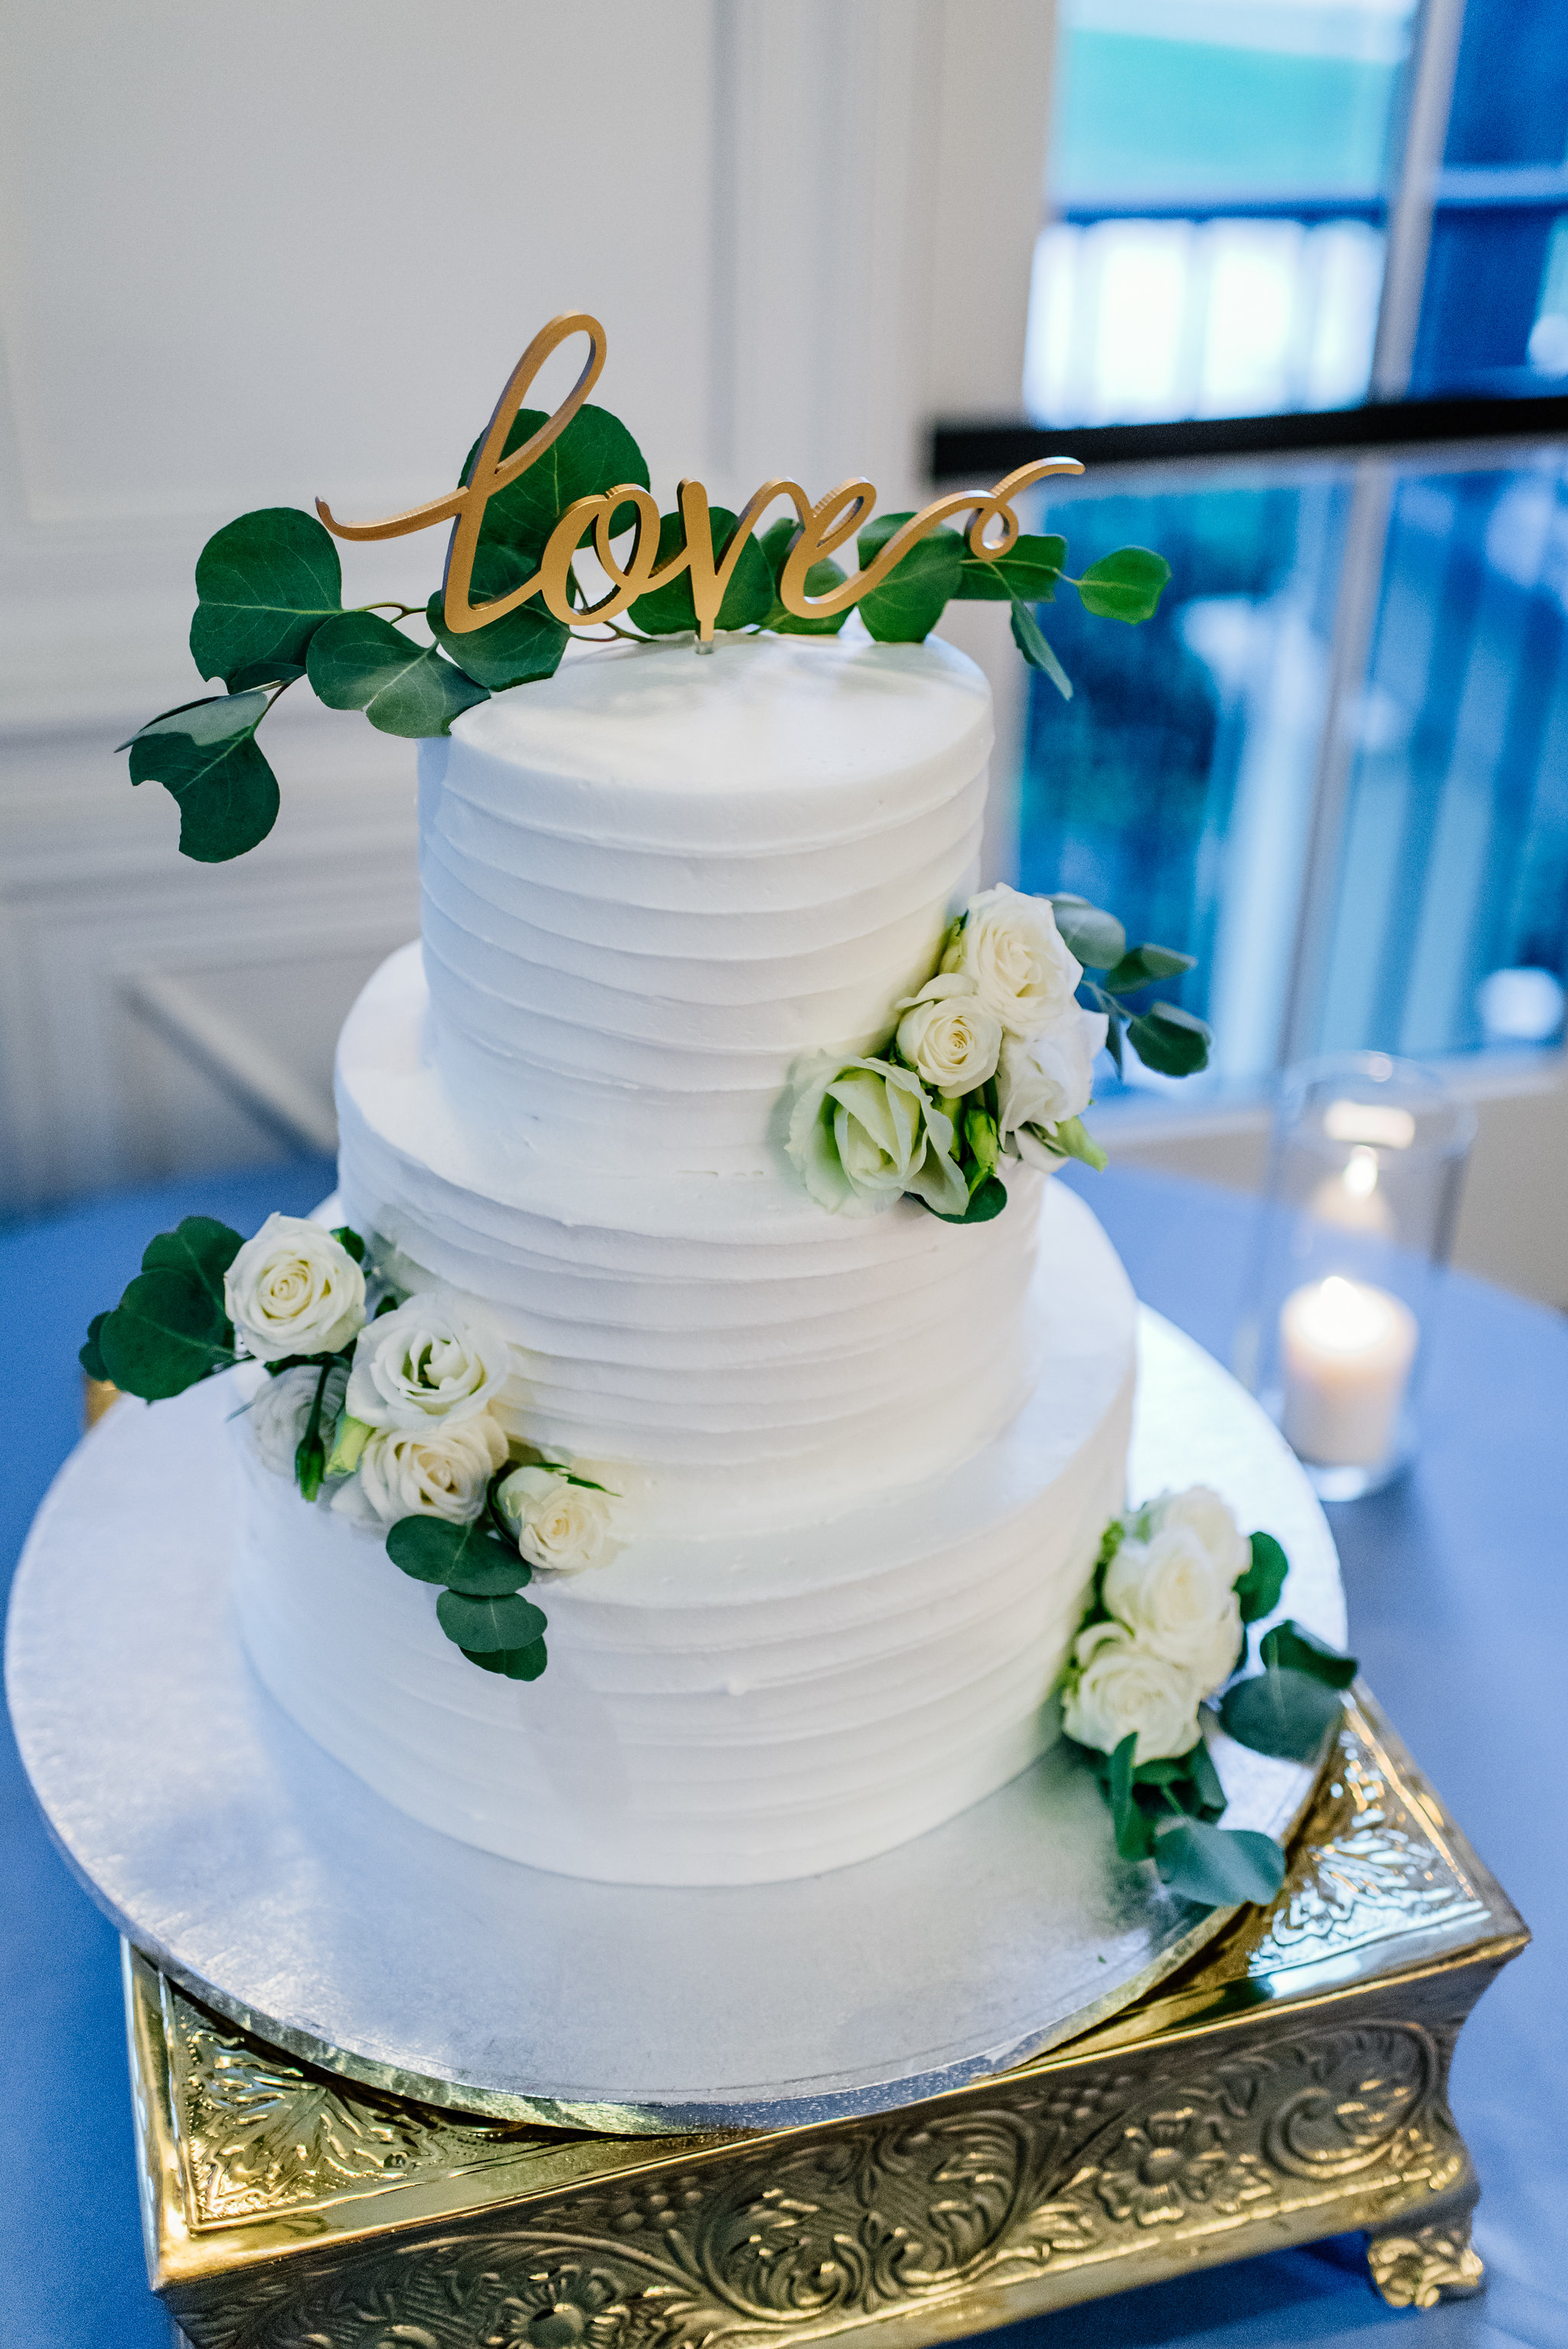 winsor event studio wedding cake greenery eucalyptus